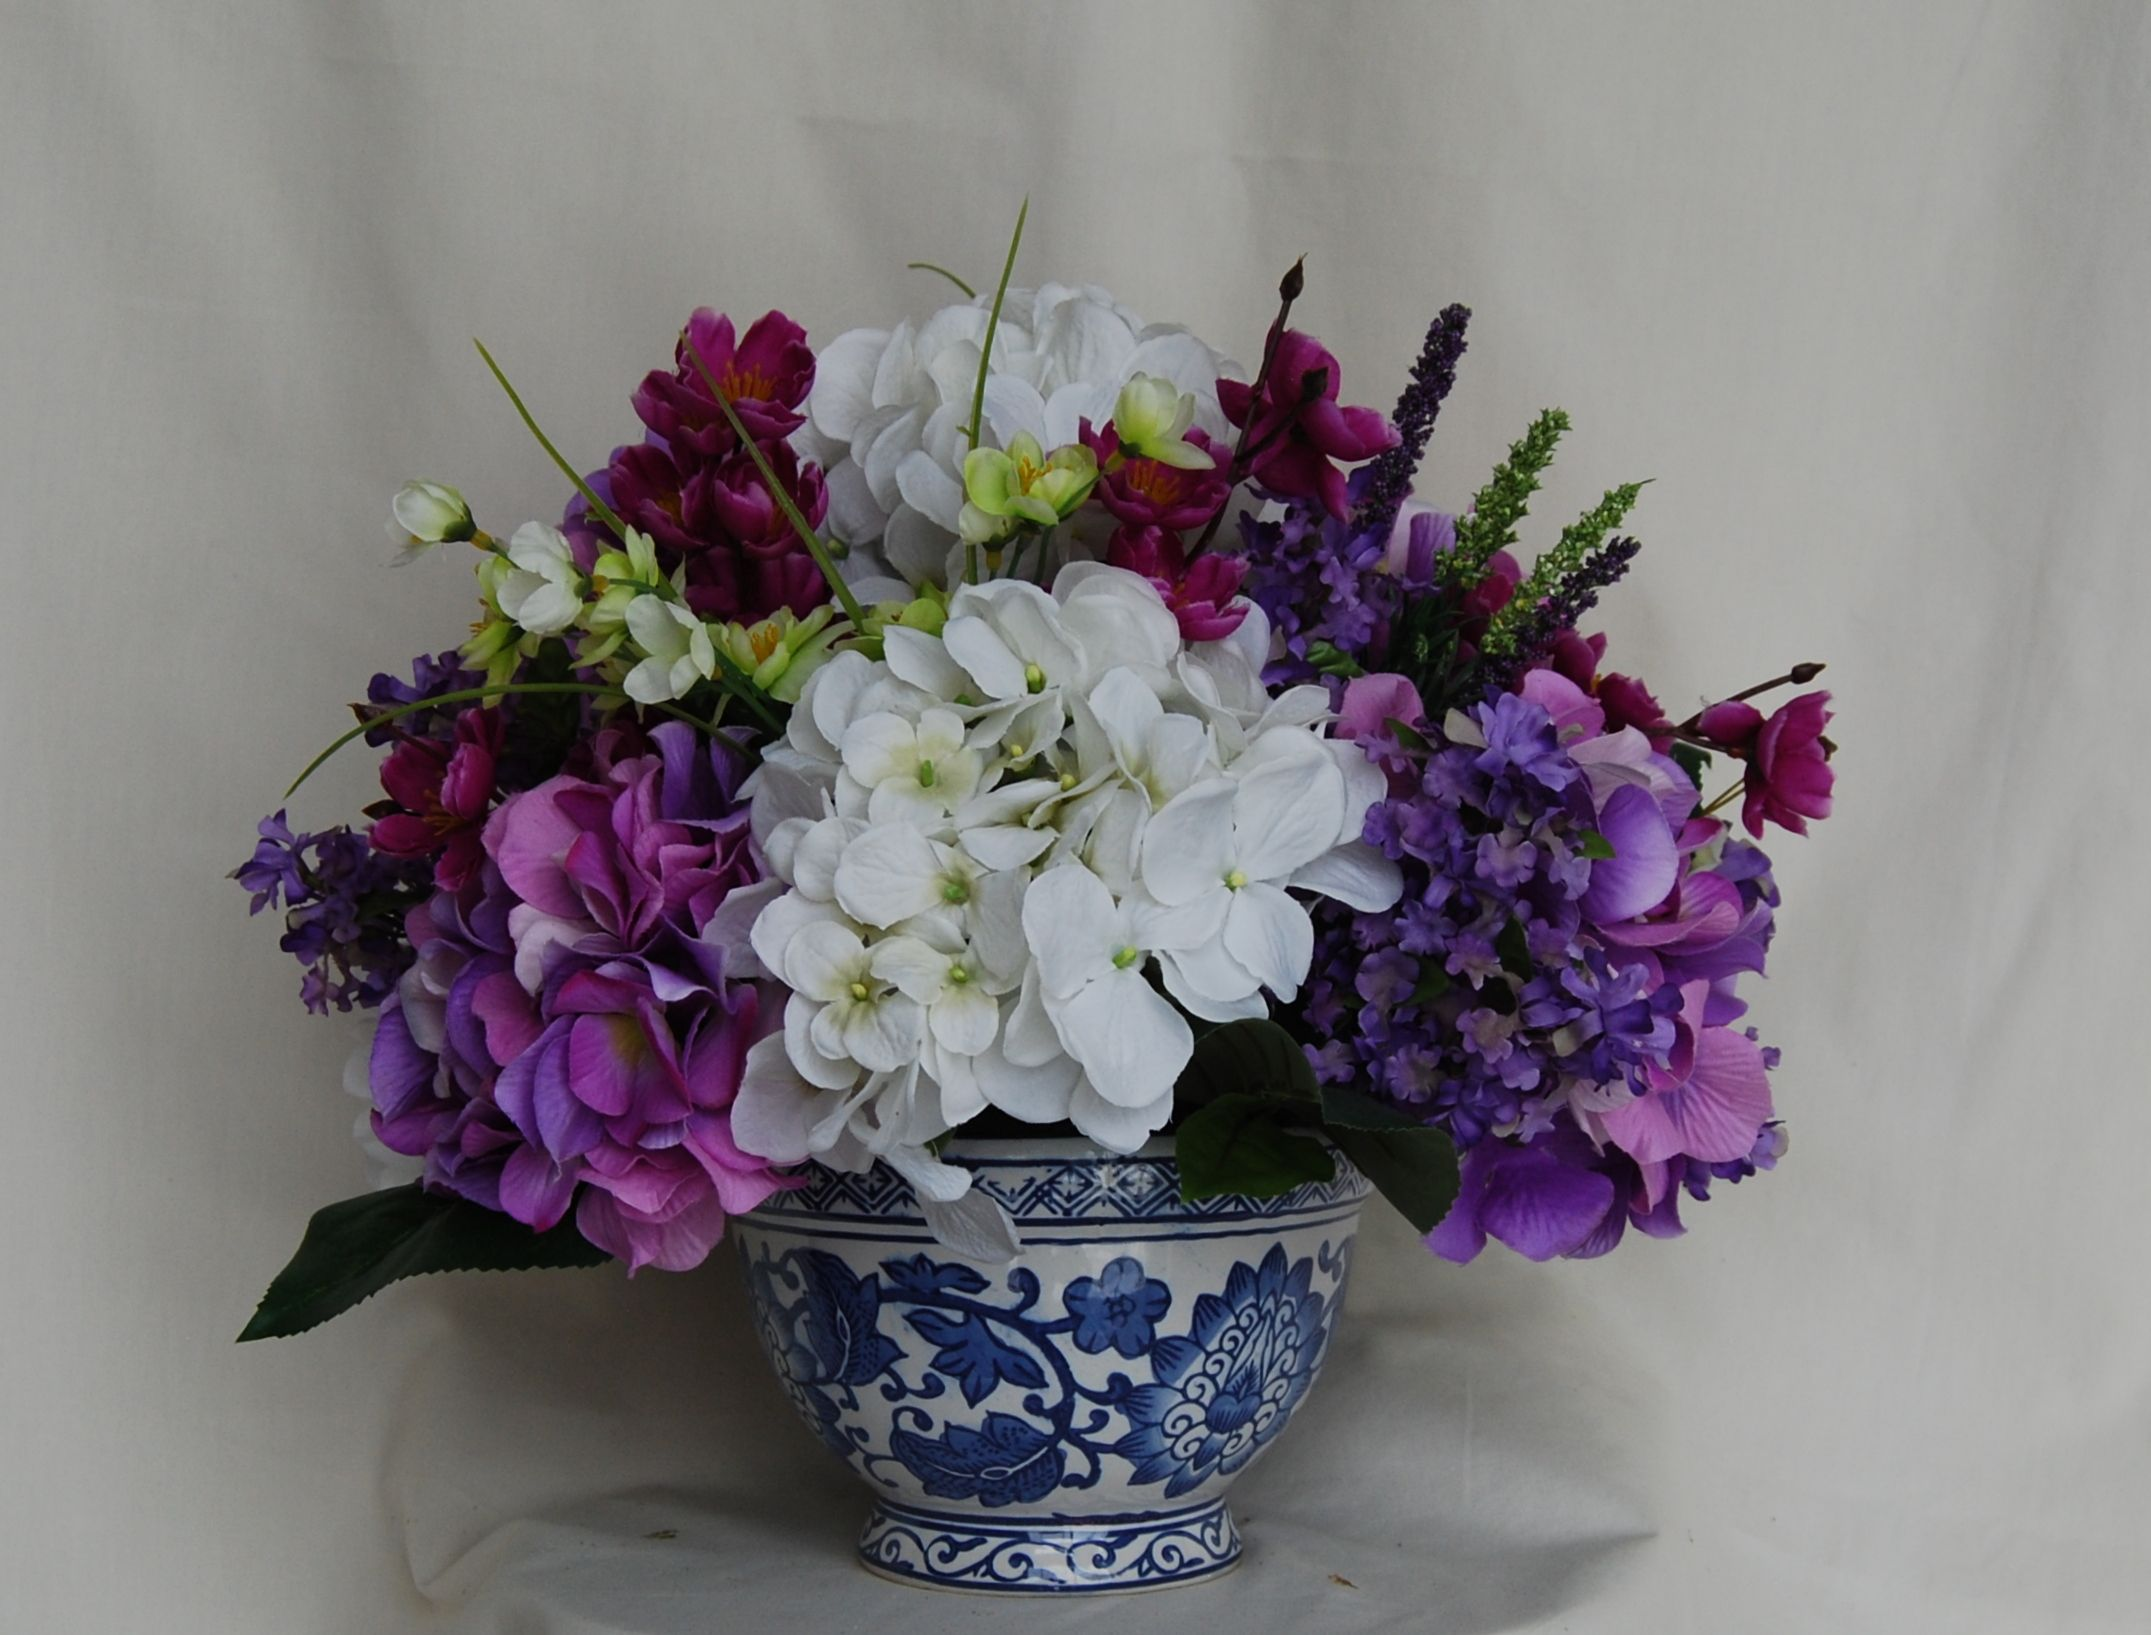 Buy A Hand Crafted Purple And White Hydrangea Silk Floral